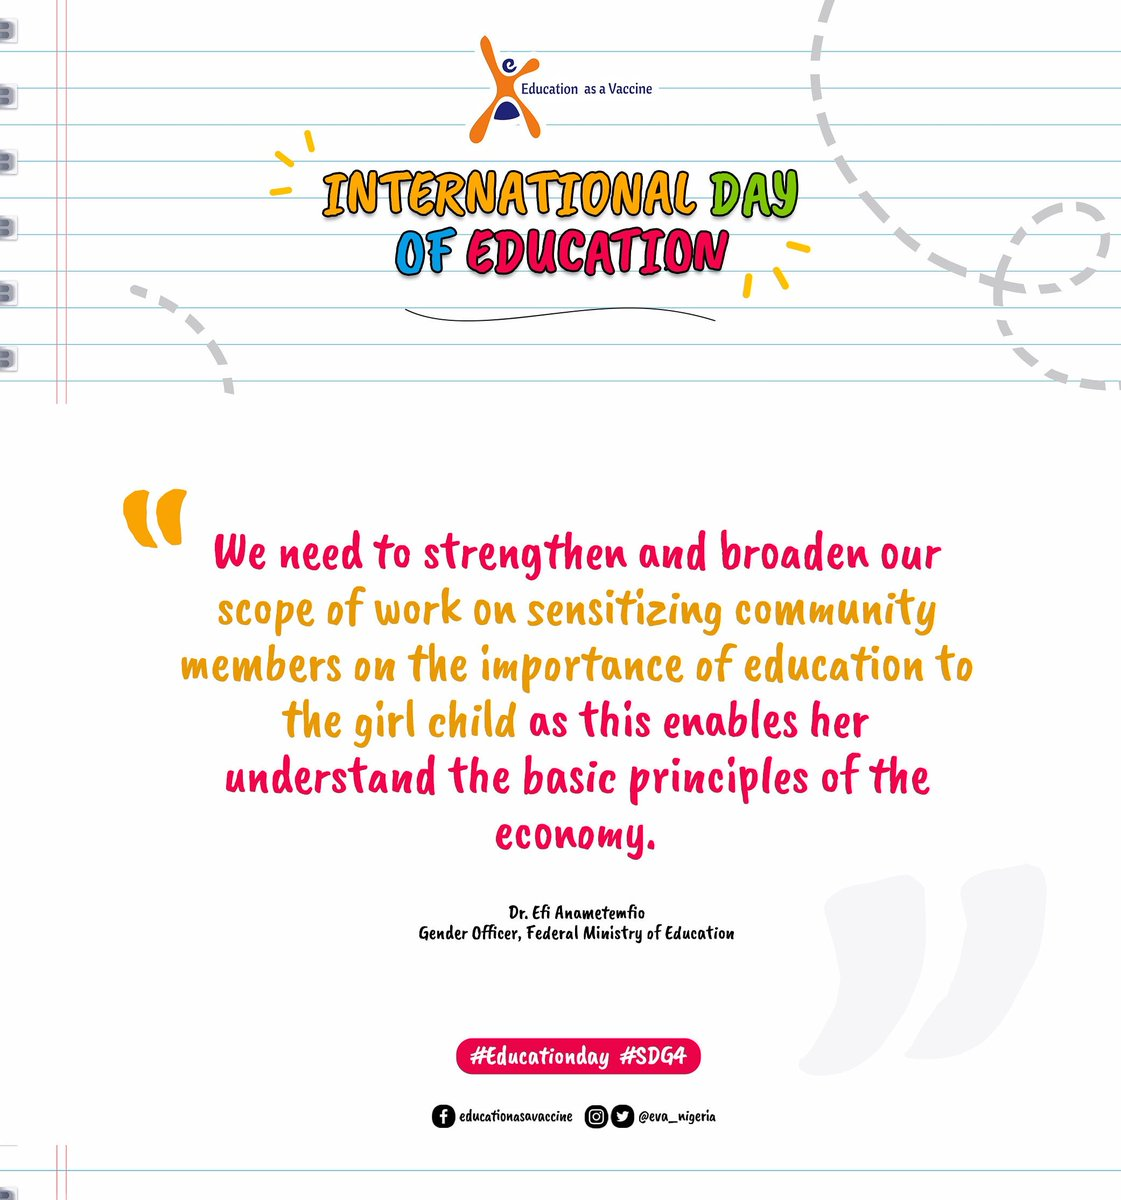 Replying to @EVA_Nigeria   The girl child needs to be educated to acquire skills and knowledge needed to advance her status for social interactions, self- improvement and economy empowerment. @NigEducation  #MondayMotivation #EducationDay